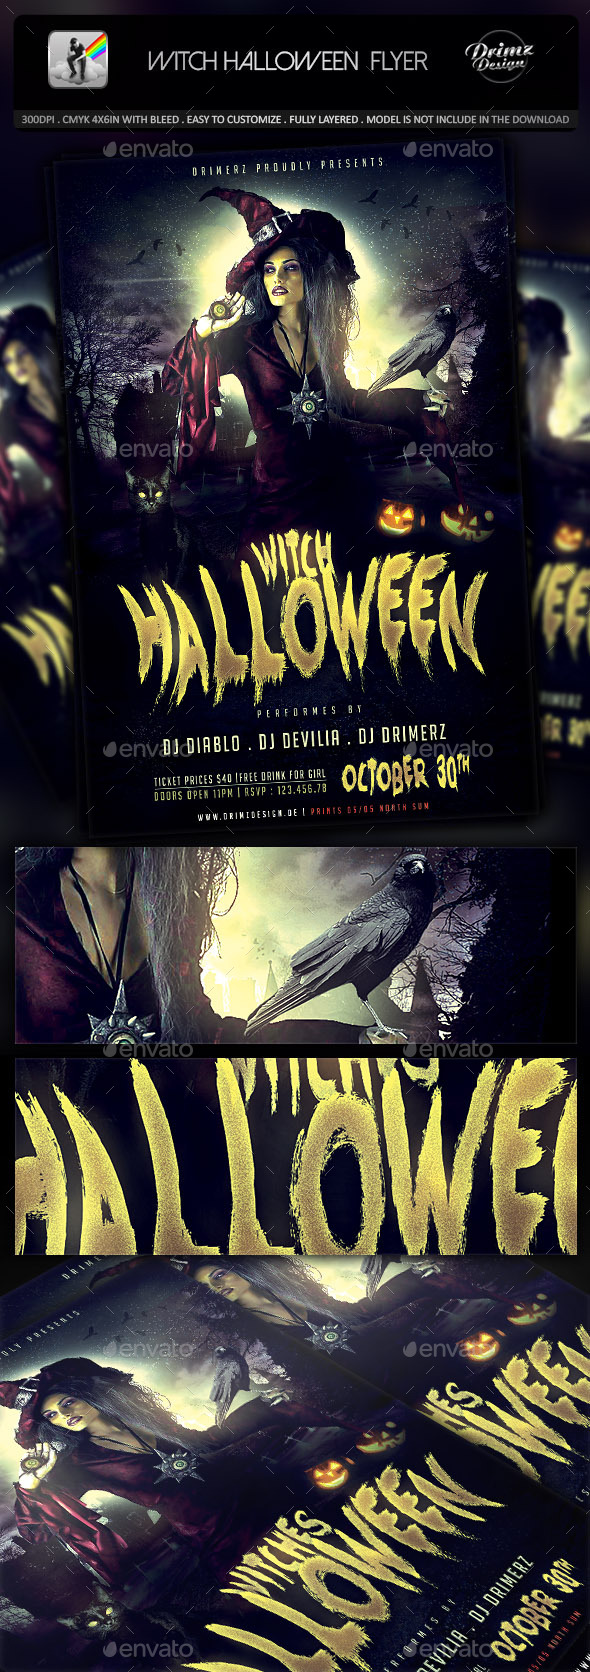 Witch Halloween Flyer